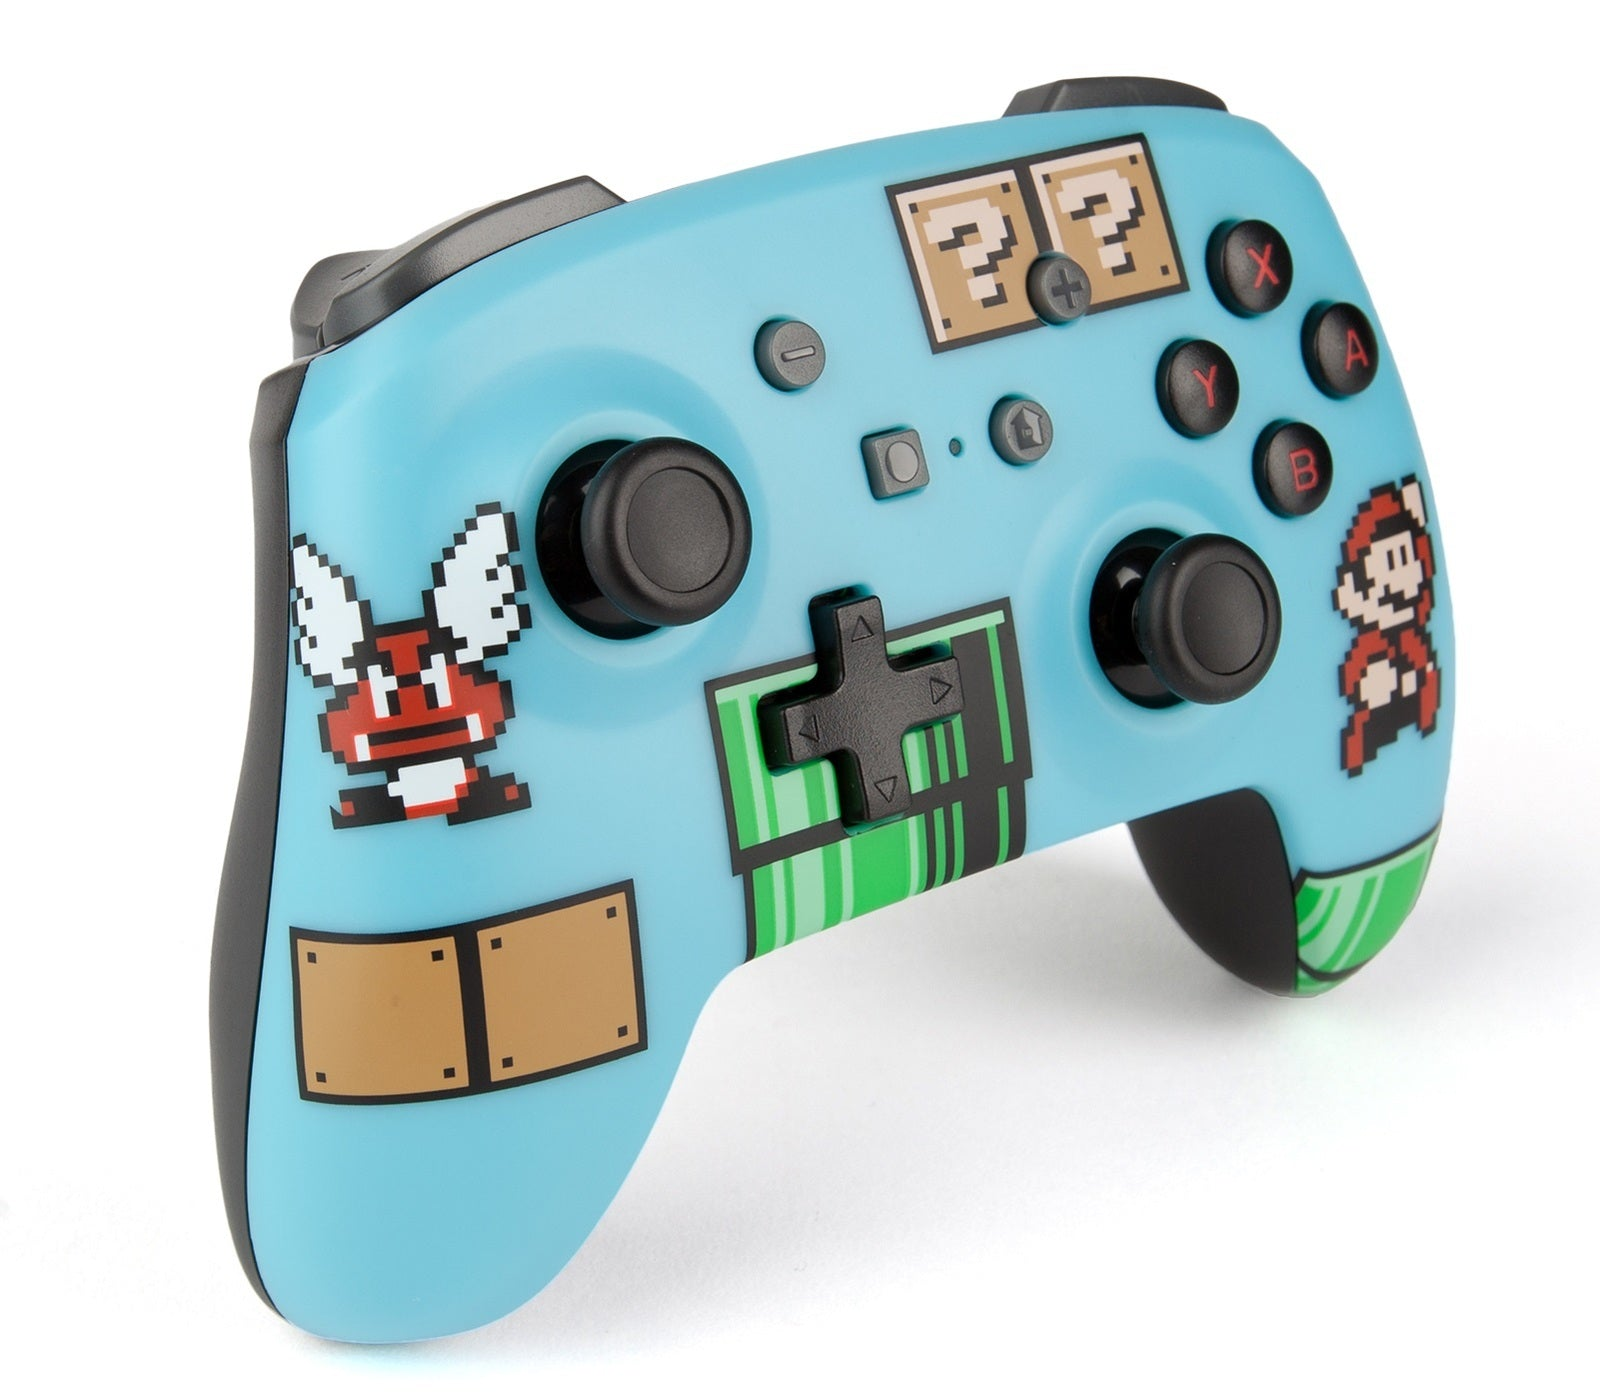 Nintendo Switch Wireless Controller - 8 Bit Mario Blue - Nintendo Switch